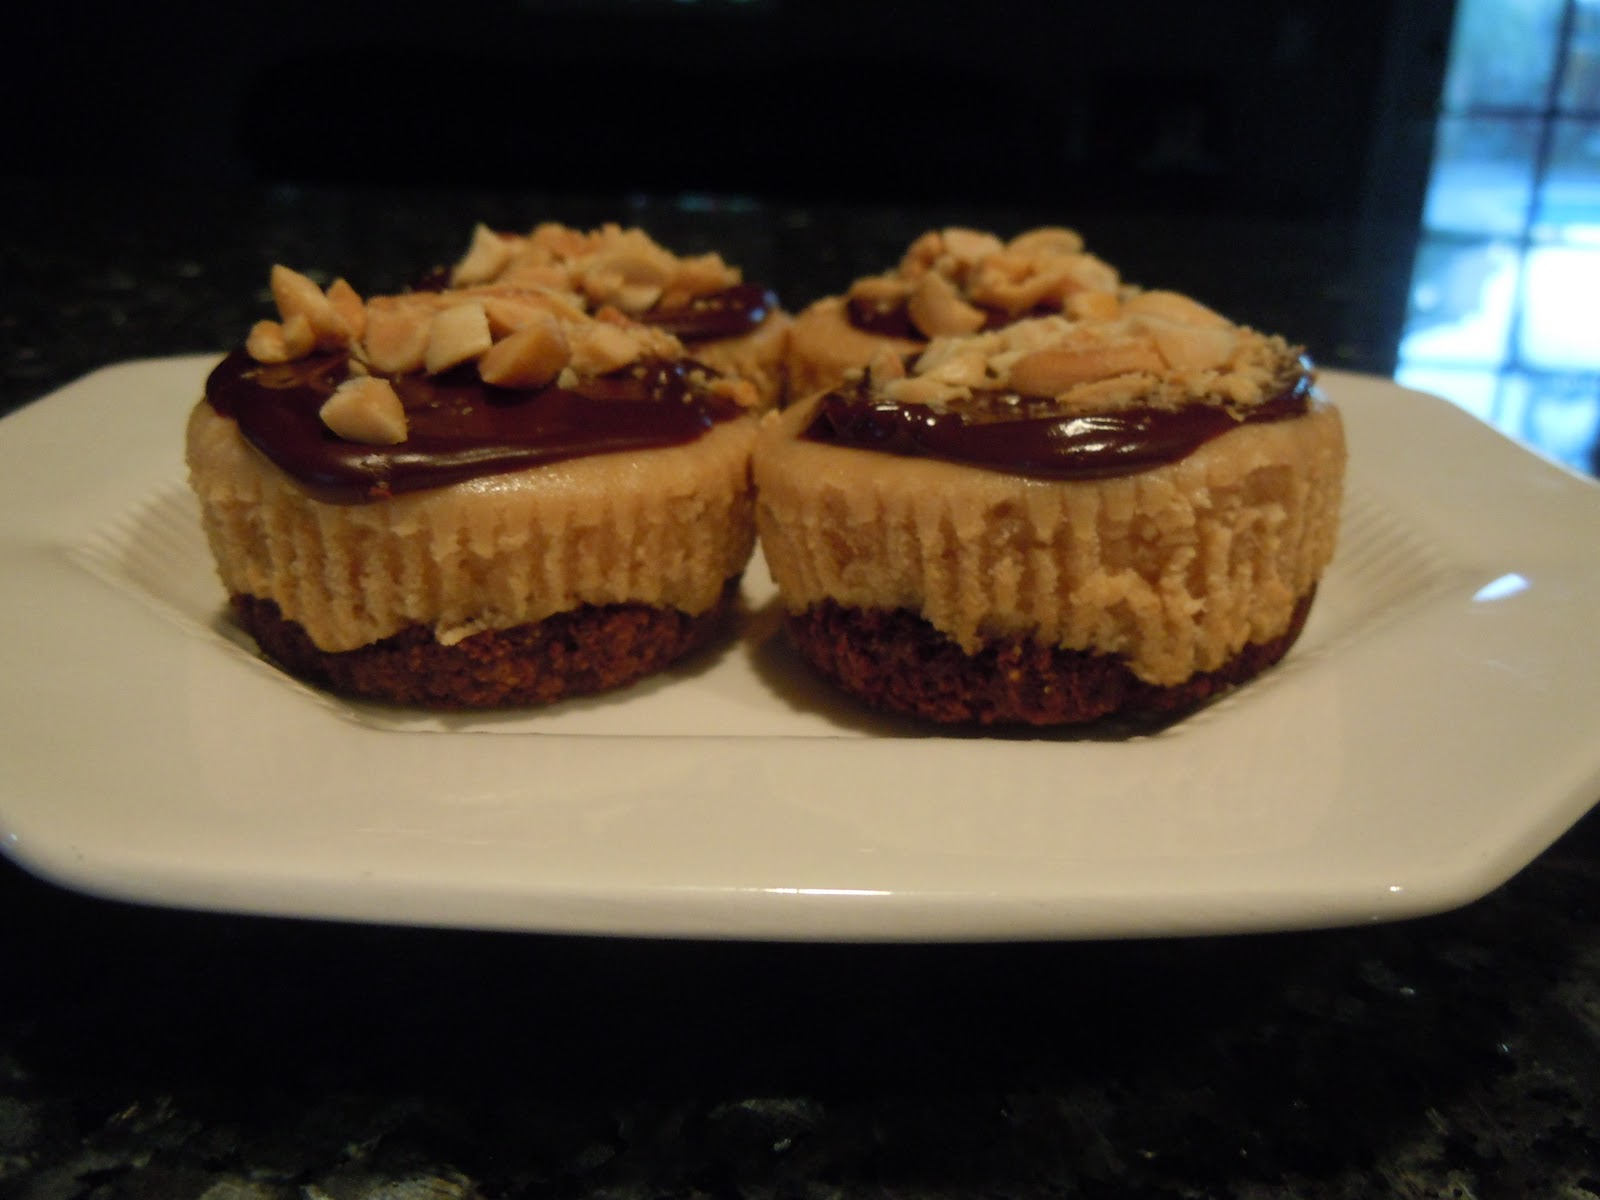 Joni Loves To Cook: Mini Peanut Butter Cheesecakes